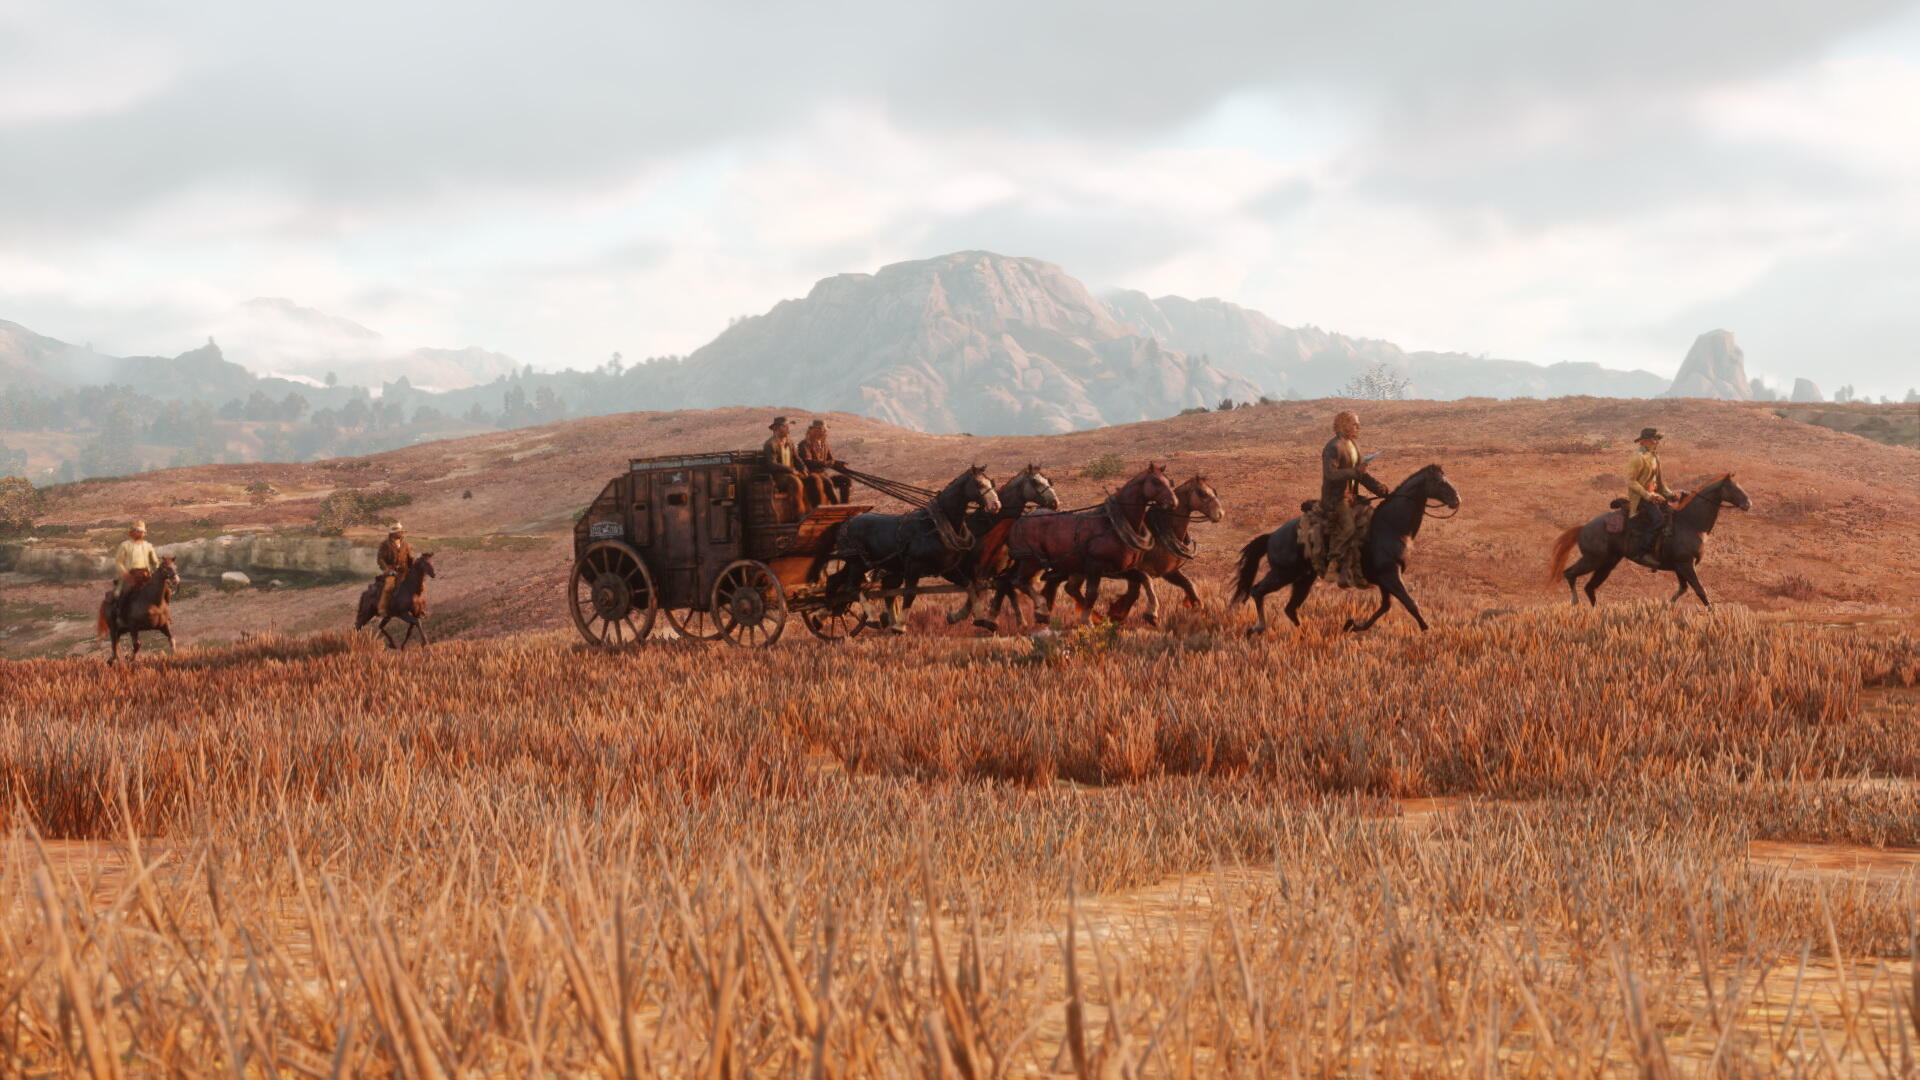 Red Dead Online Tips - Beginner's Guide - How to Start Free Roam, Horse Brush, Set Up Camp